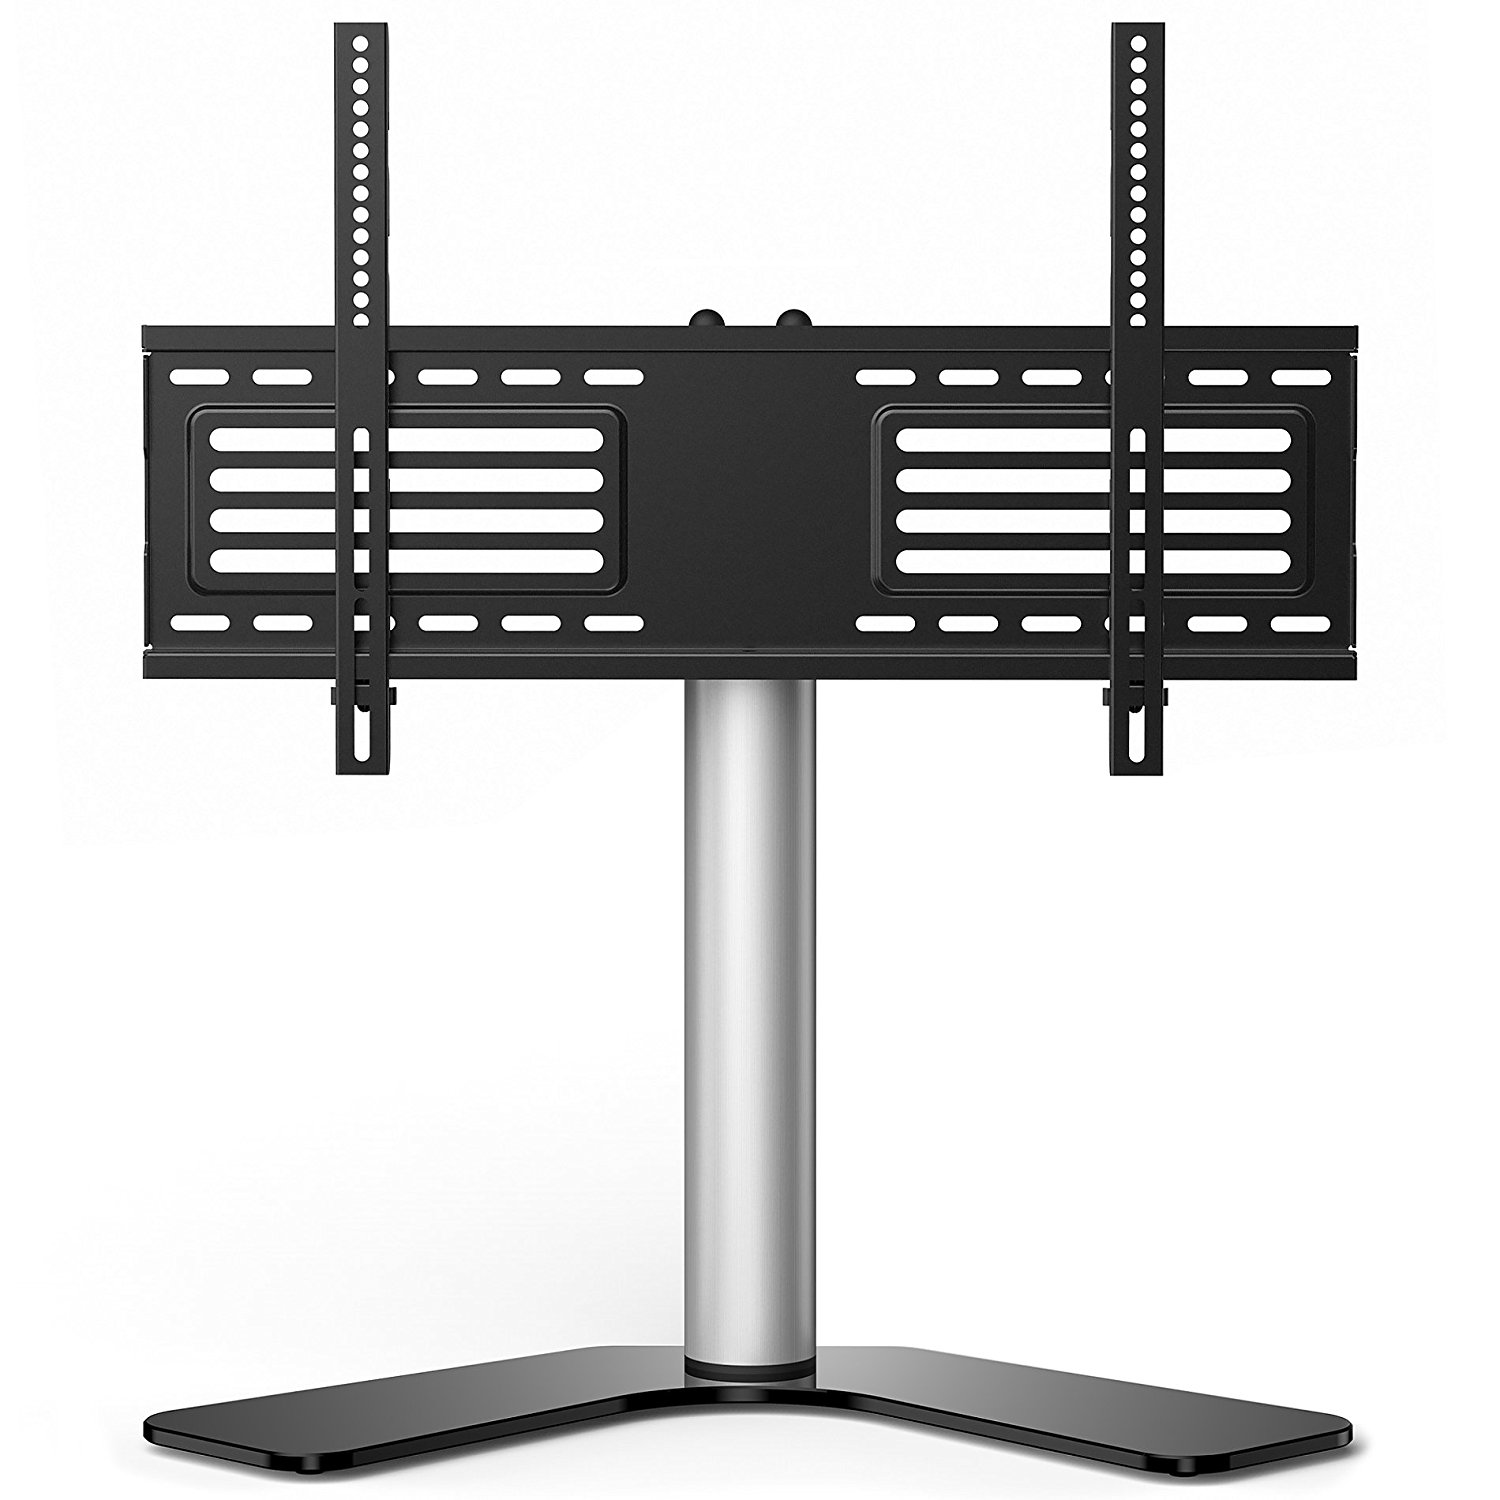 FITUEYES Universal Swivel TV Stand with Mount for 32 42 up to 65 inch Samsung Sony Lg Flat screenTvs TT106001GB